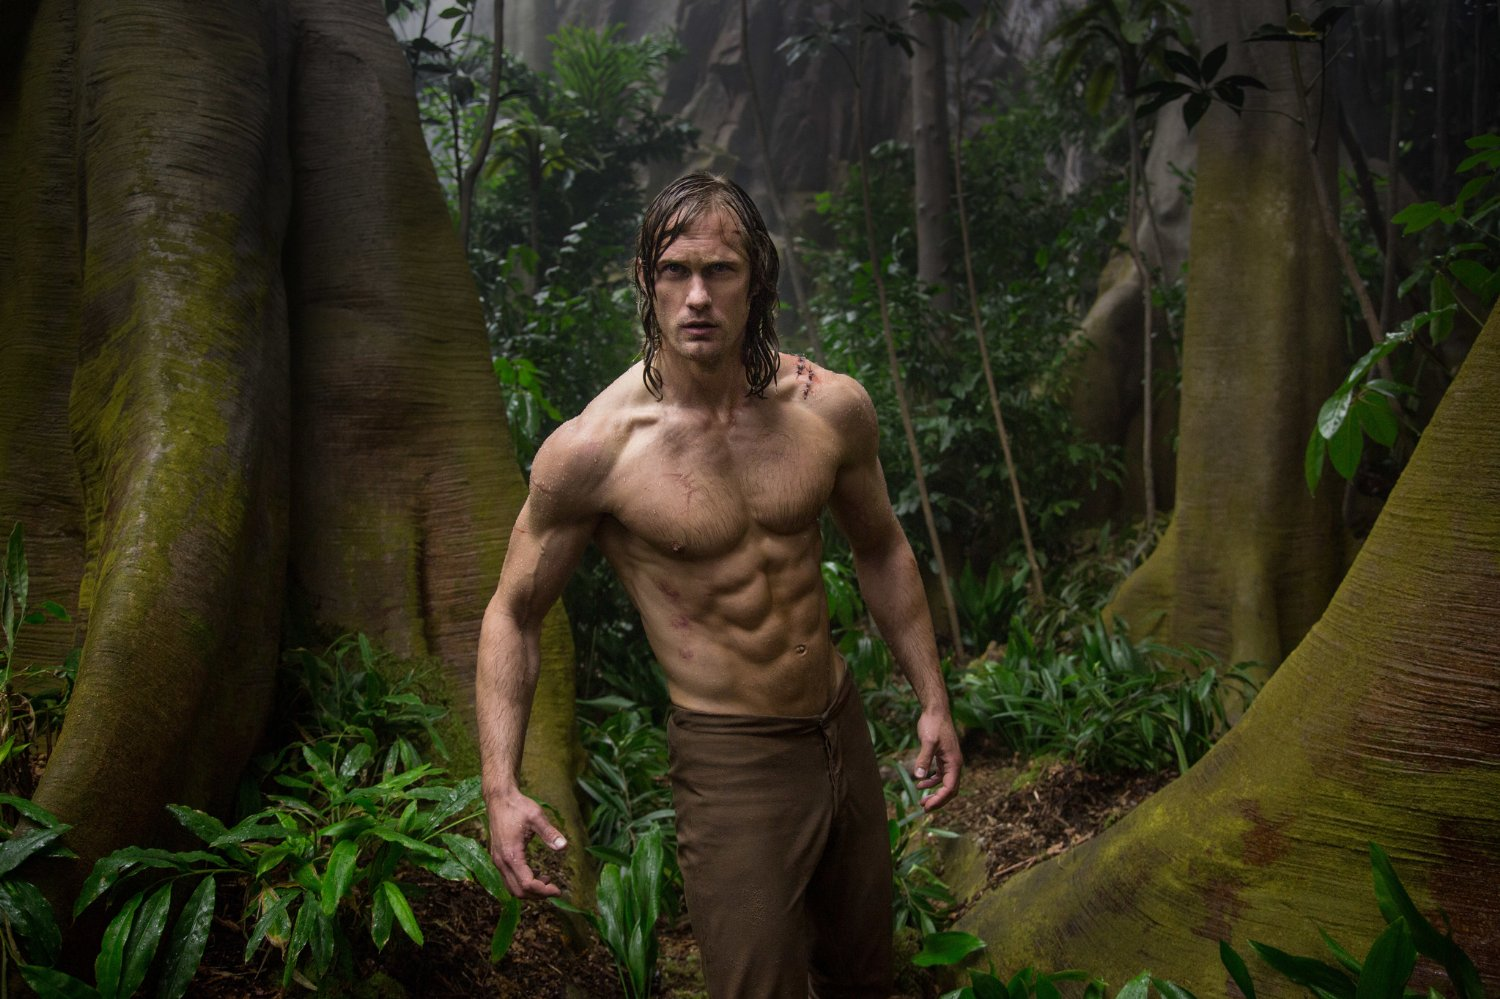 Alexander Skarsgård in The Legend of Tarzan (2016) Credit: 2014 Warner Bros. Entertainment Inc.